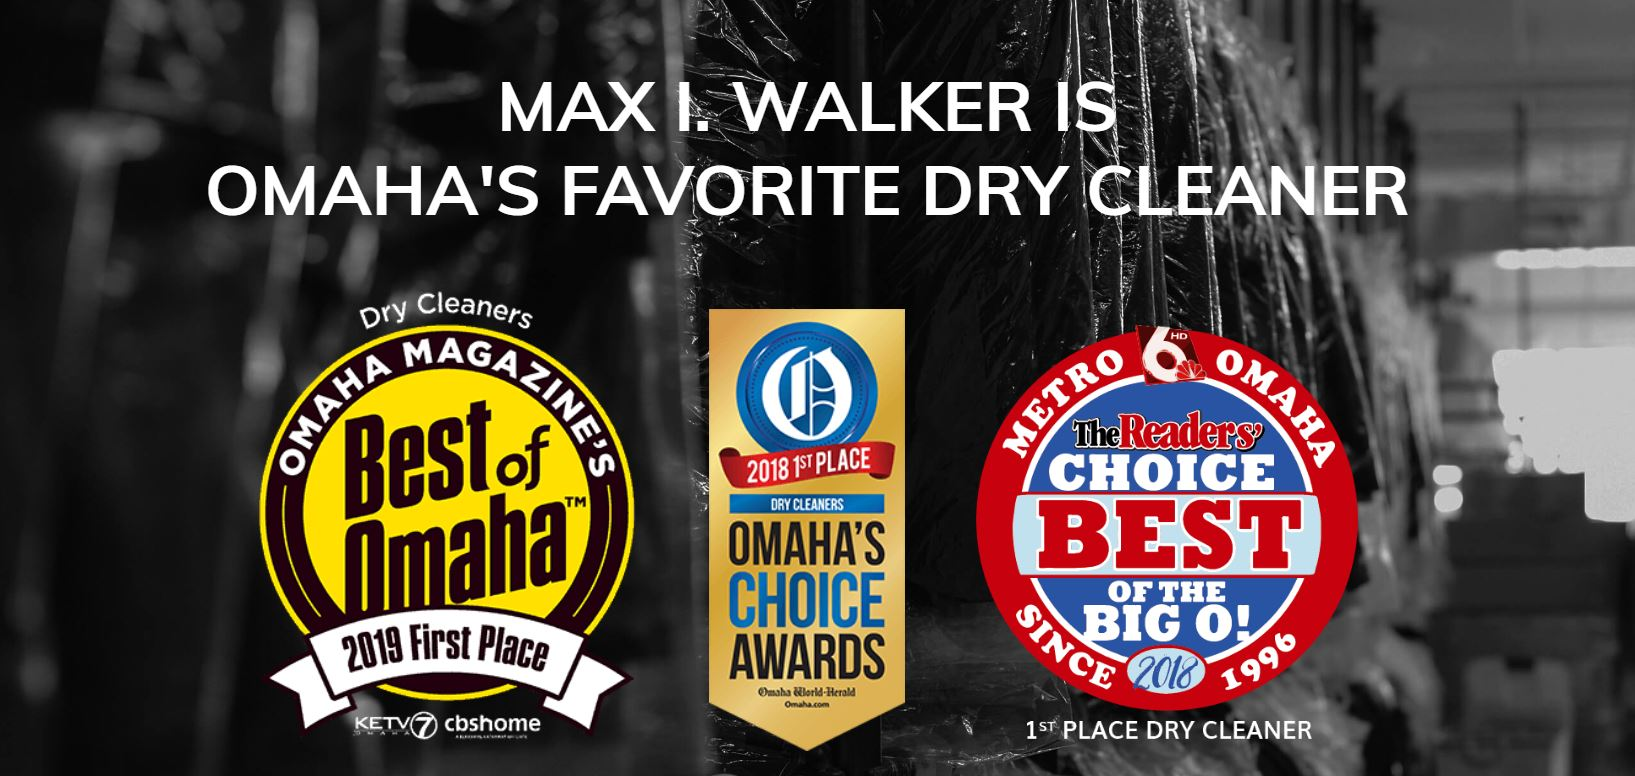 f78446503b Omaha Dry Cleaner & Launderer Max I. Walker | Dry Cleaning | Laundry